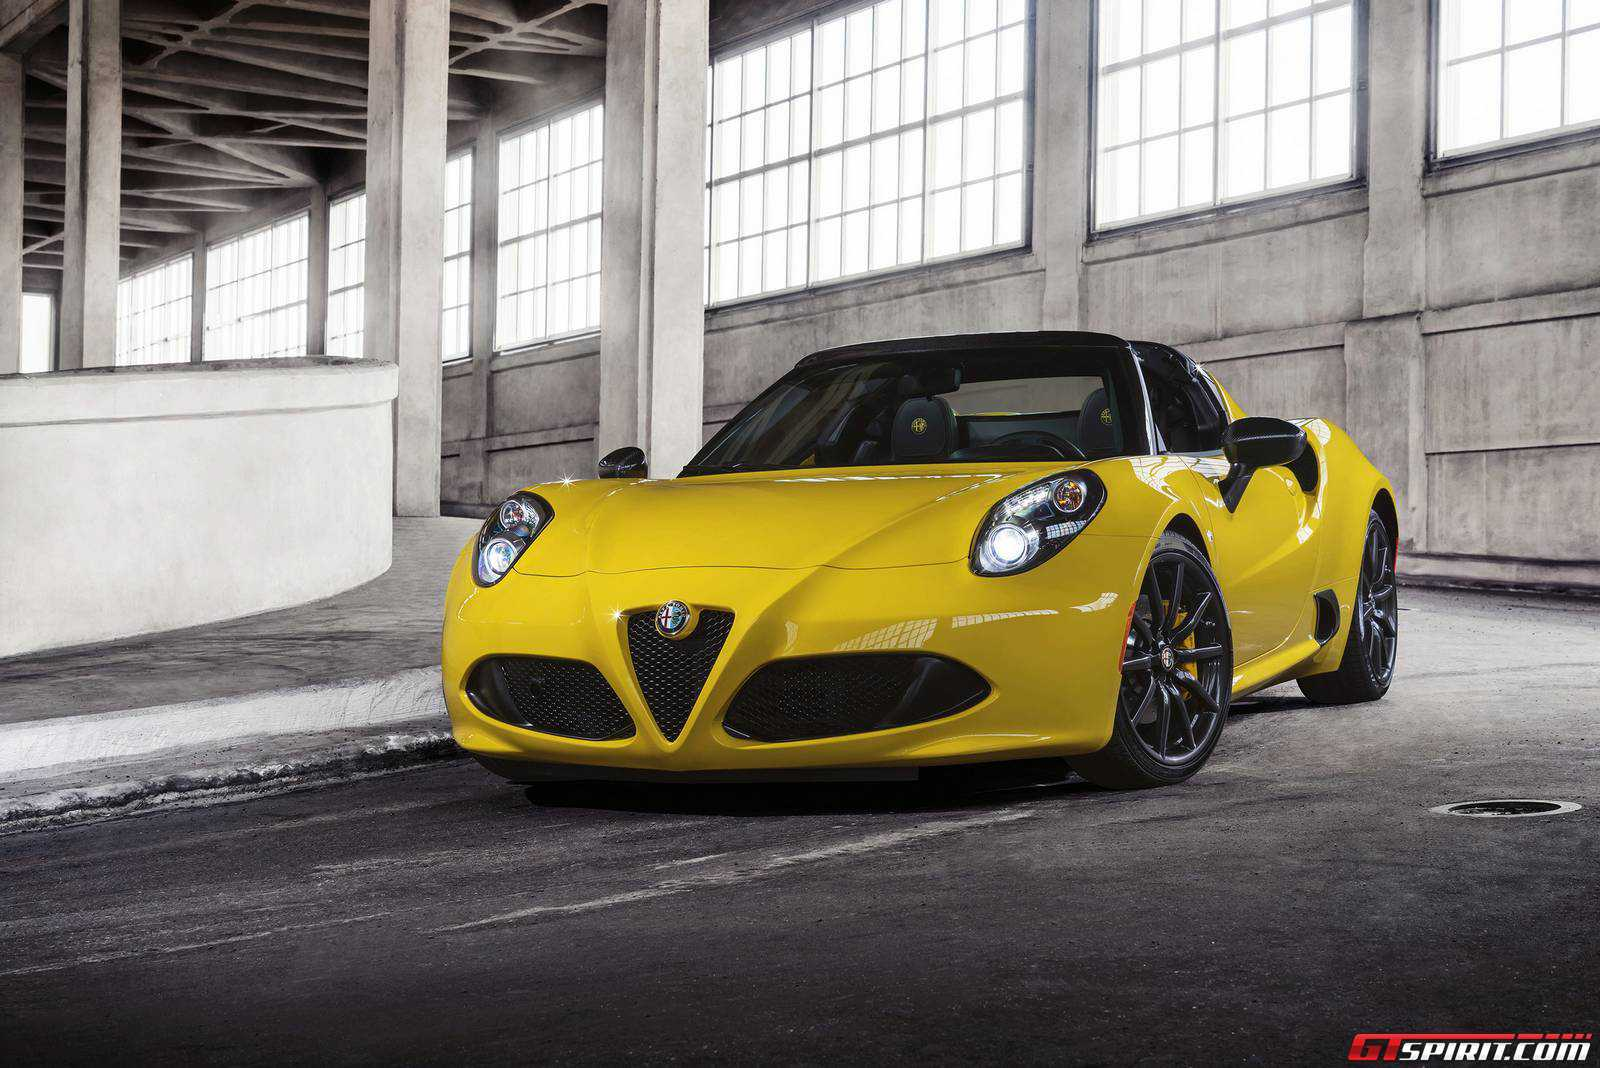 Alfa Romeo 4C Spider order books open in the UK